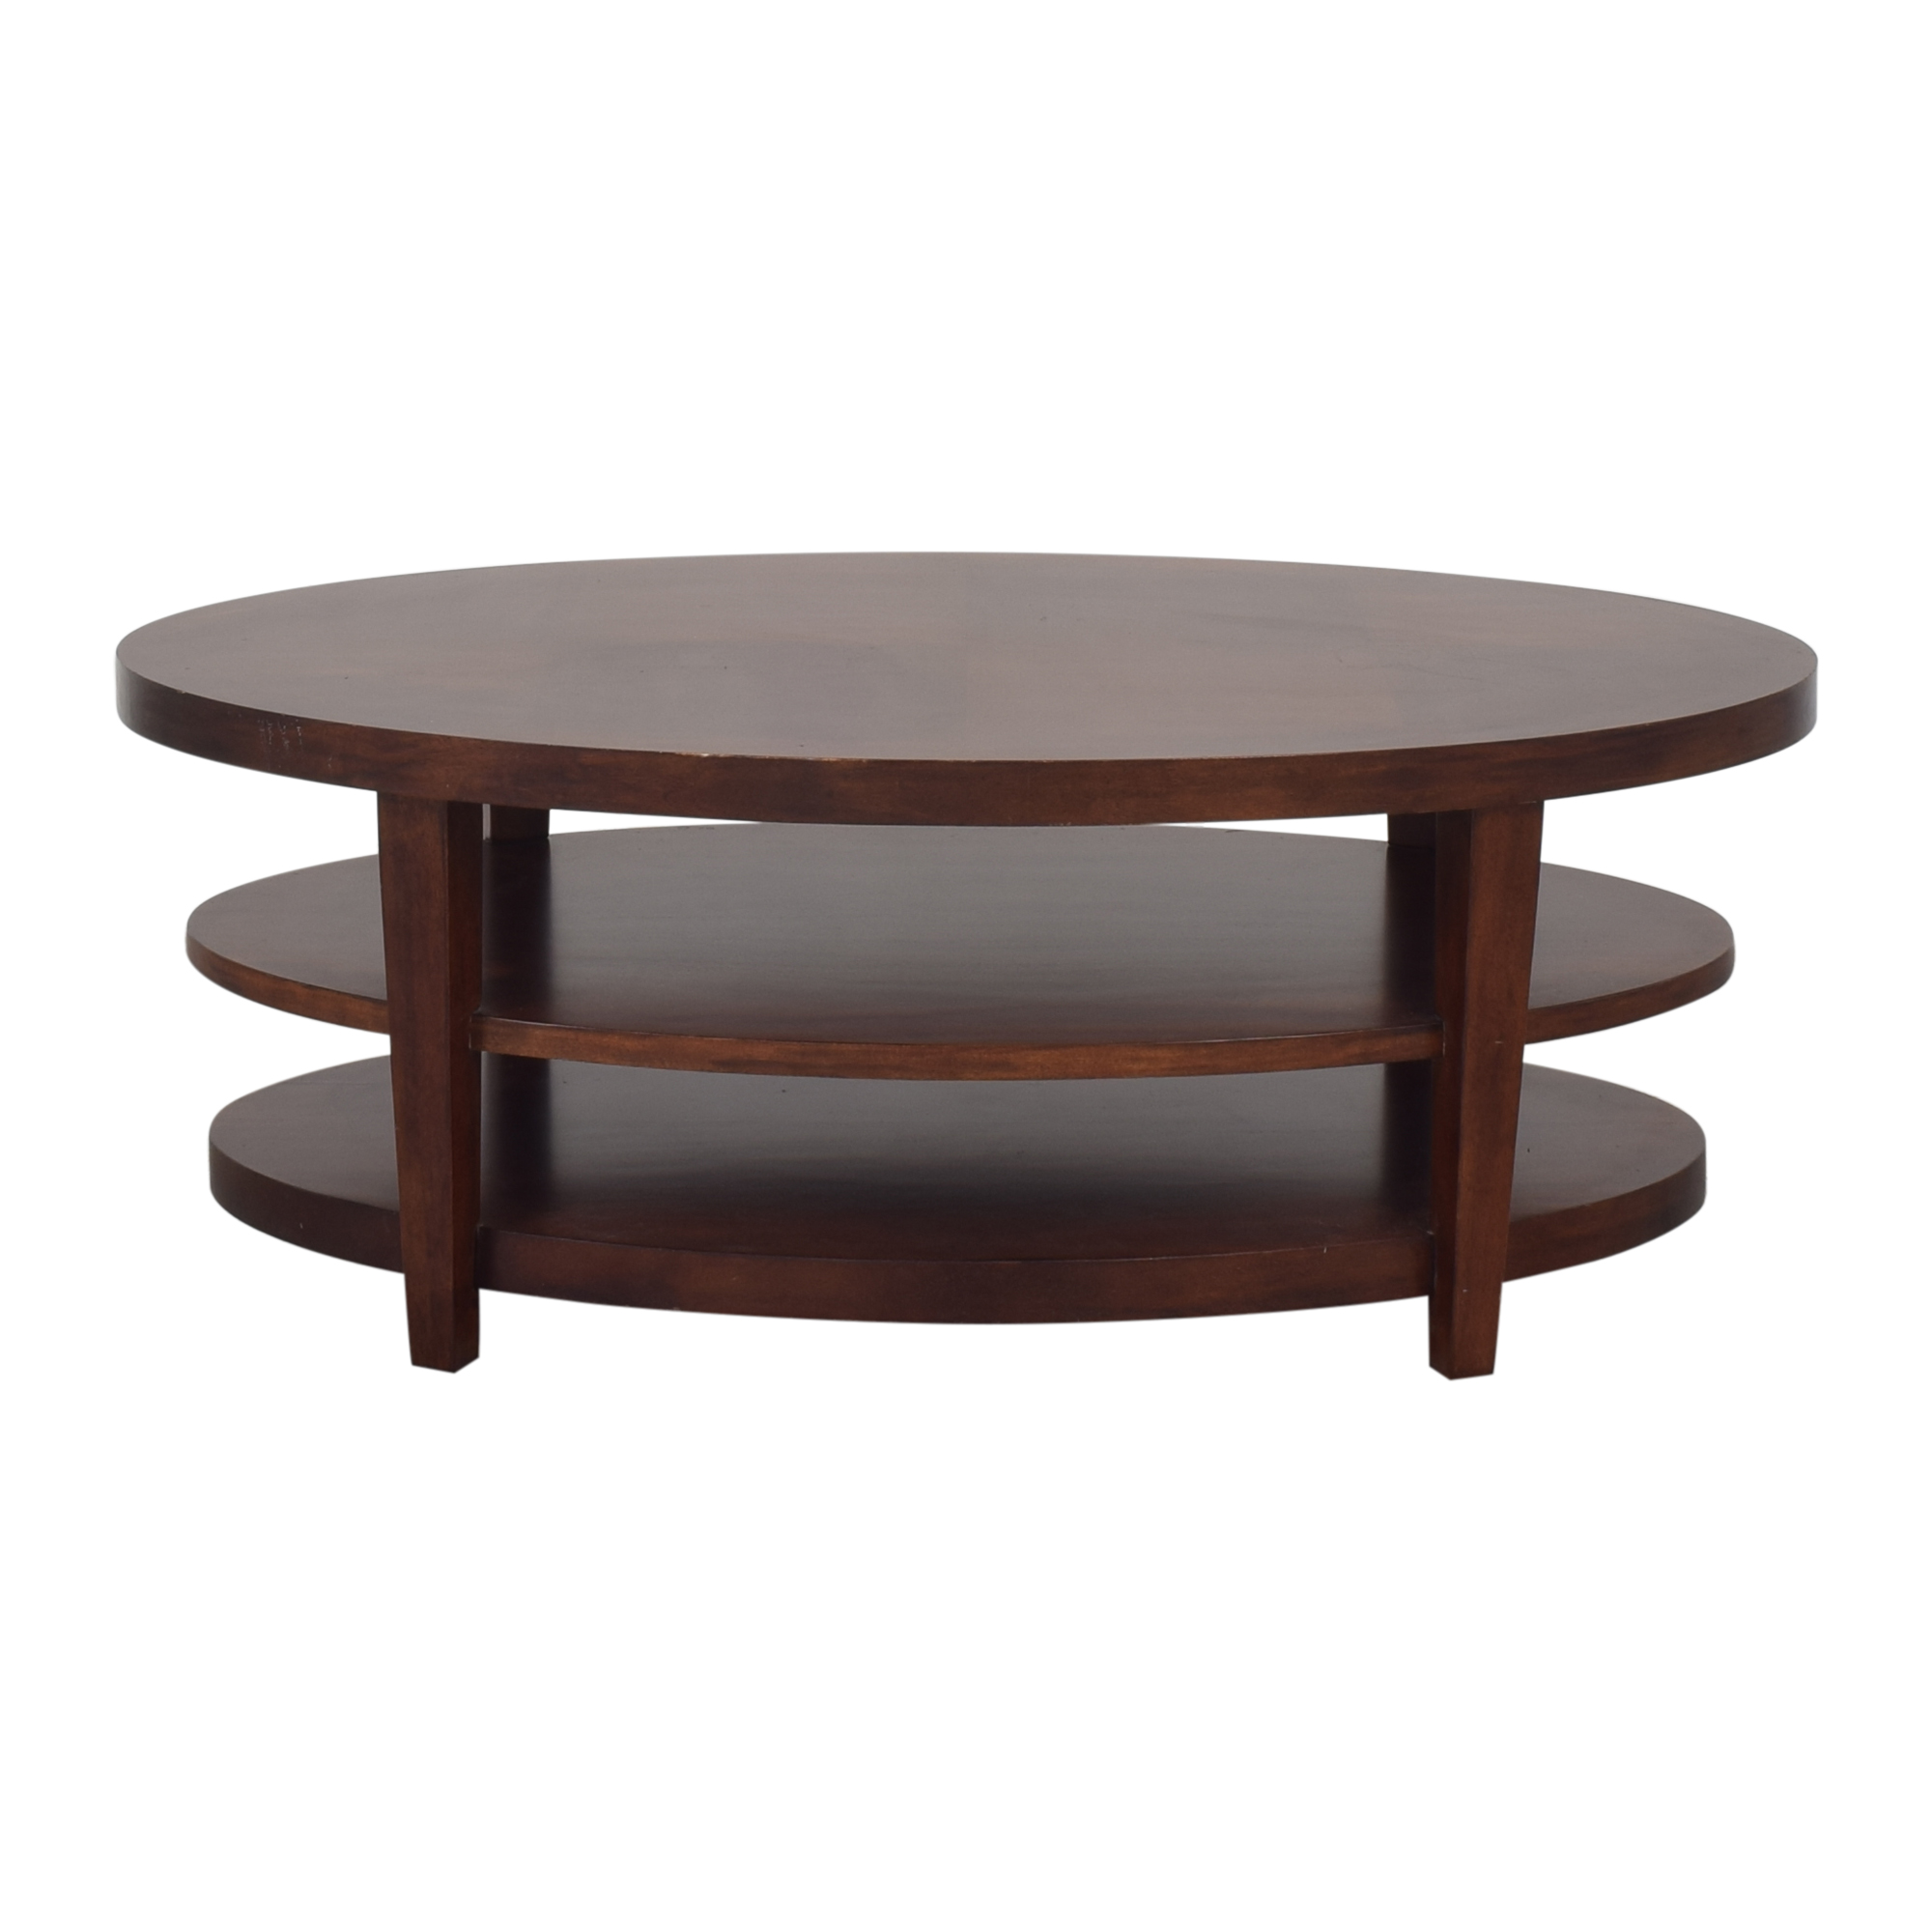 Lane Furniture Lane Furniture Three Tier Coffee Table dimensions